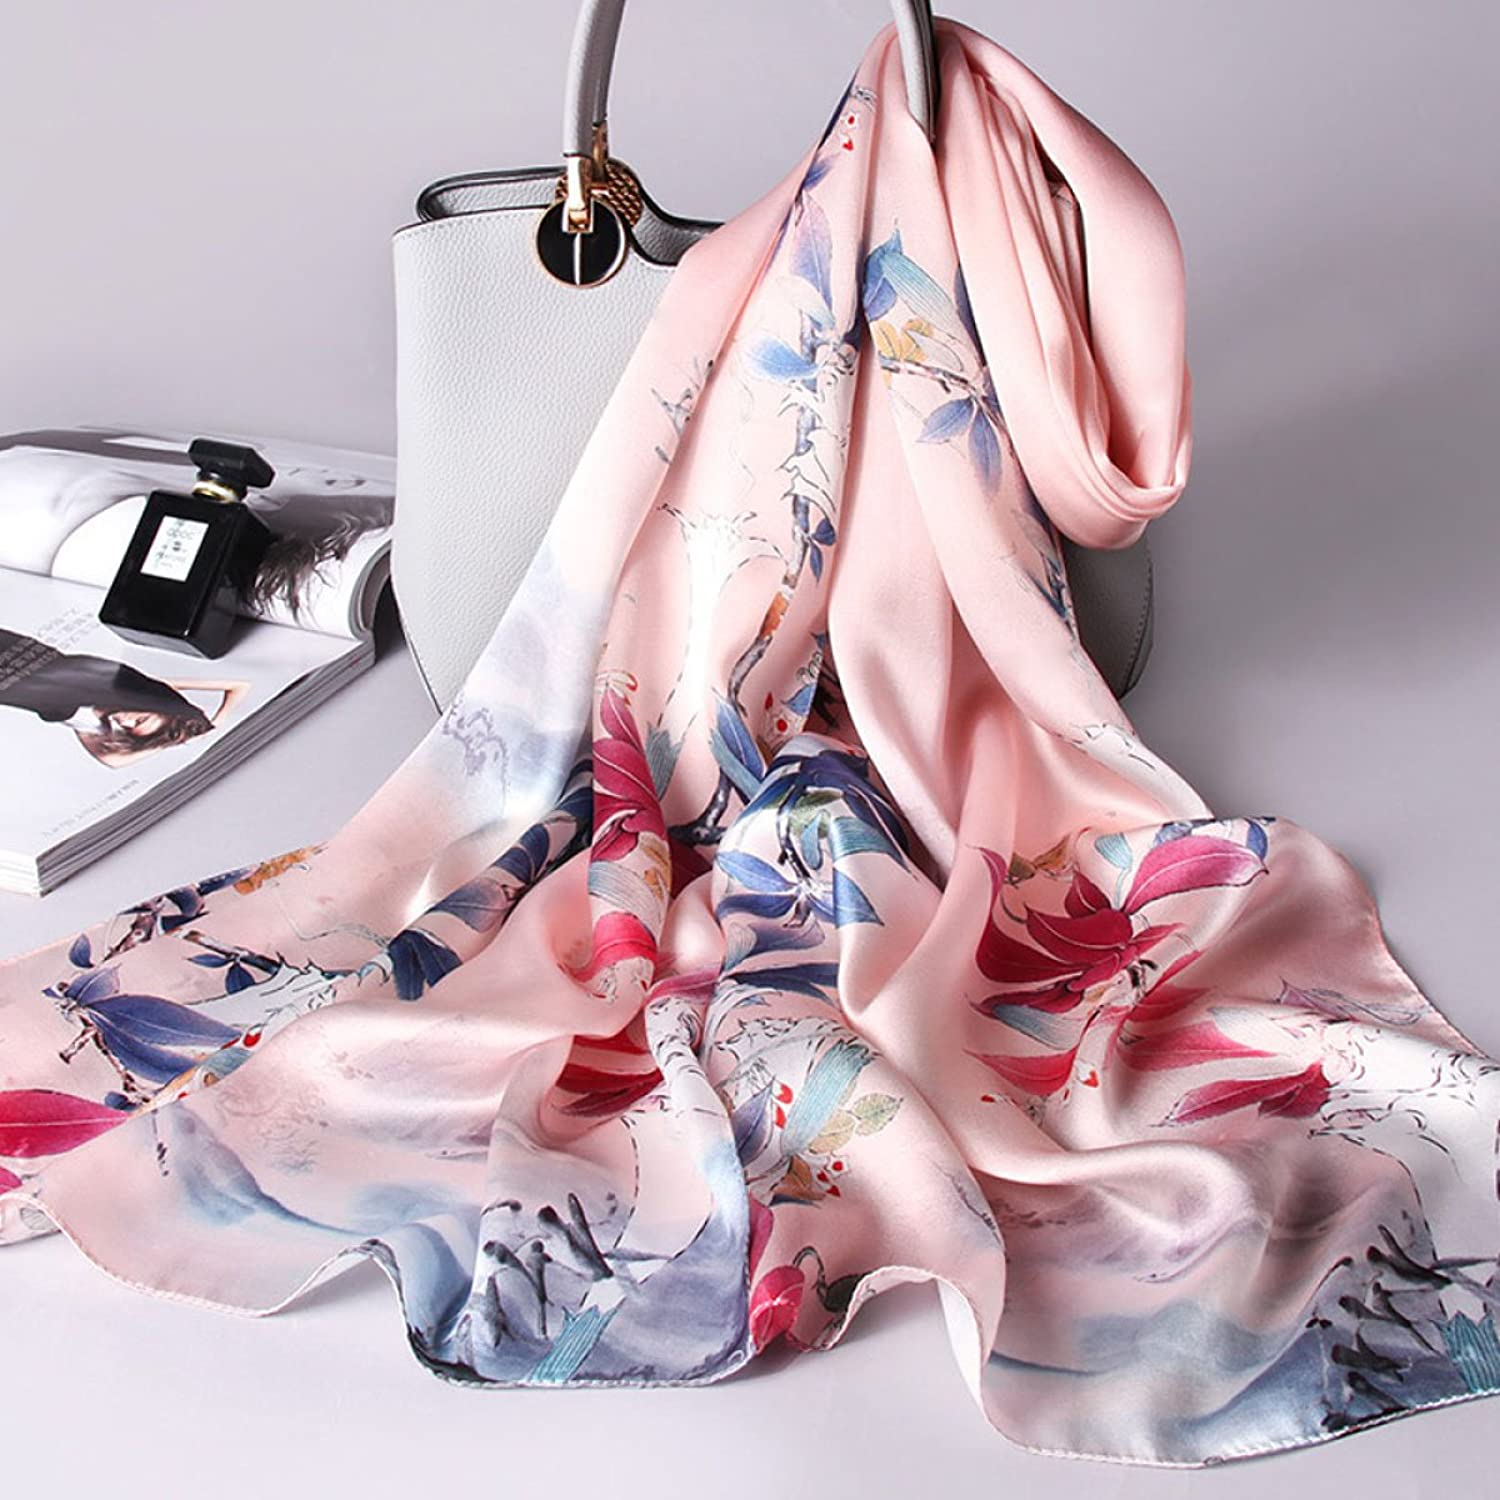 AchangScarf Silk Scarf Print Embroidery Embroidered Long Satin Shawl Beach Towel Soft and Comfortable (Length  170  53cm, Packing of 1) (color   K)